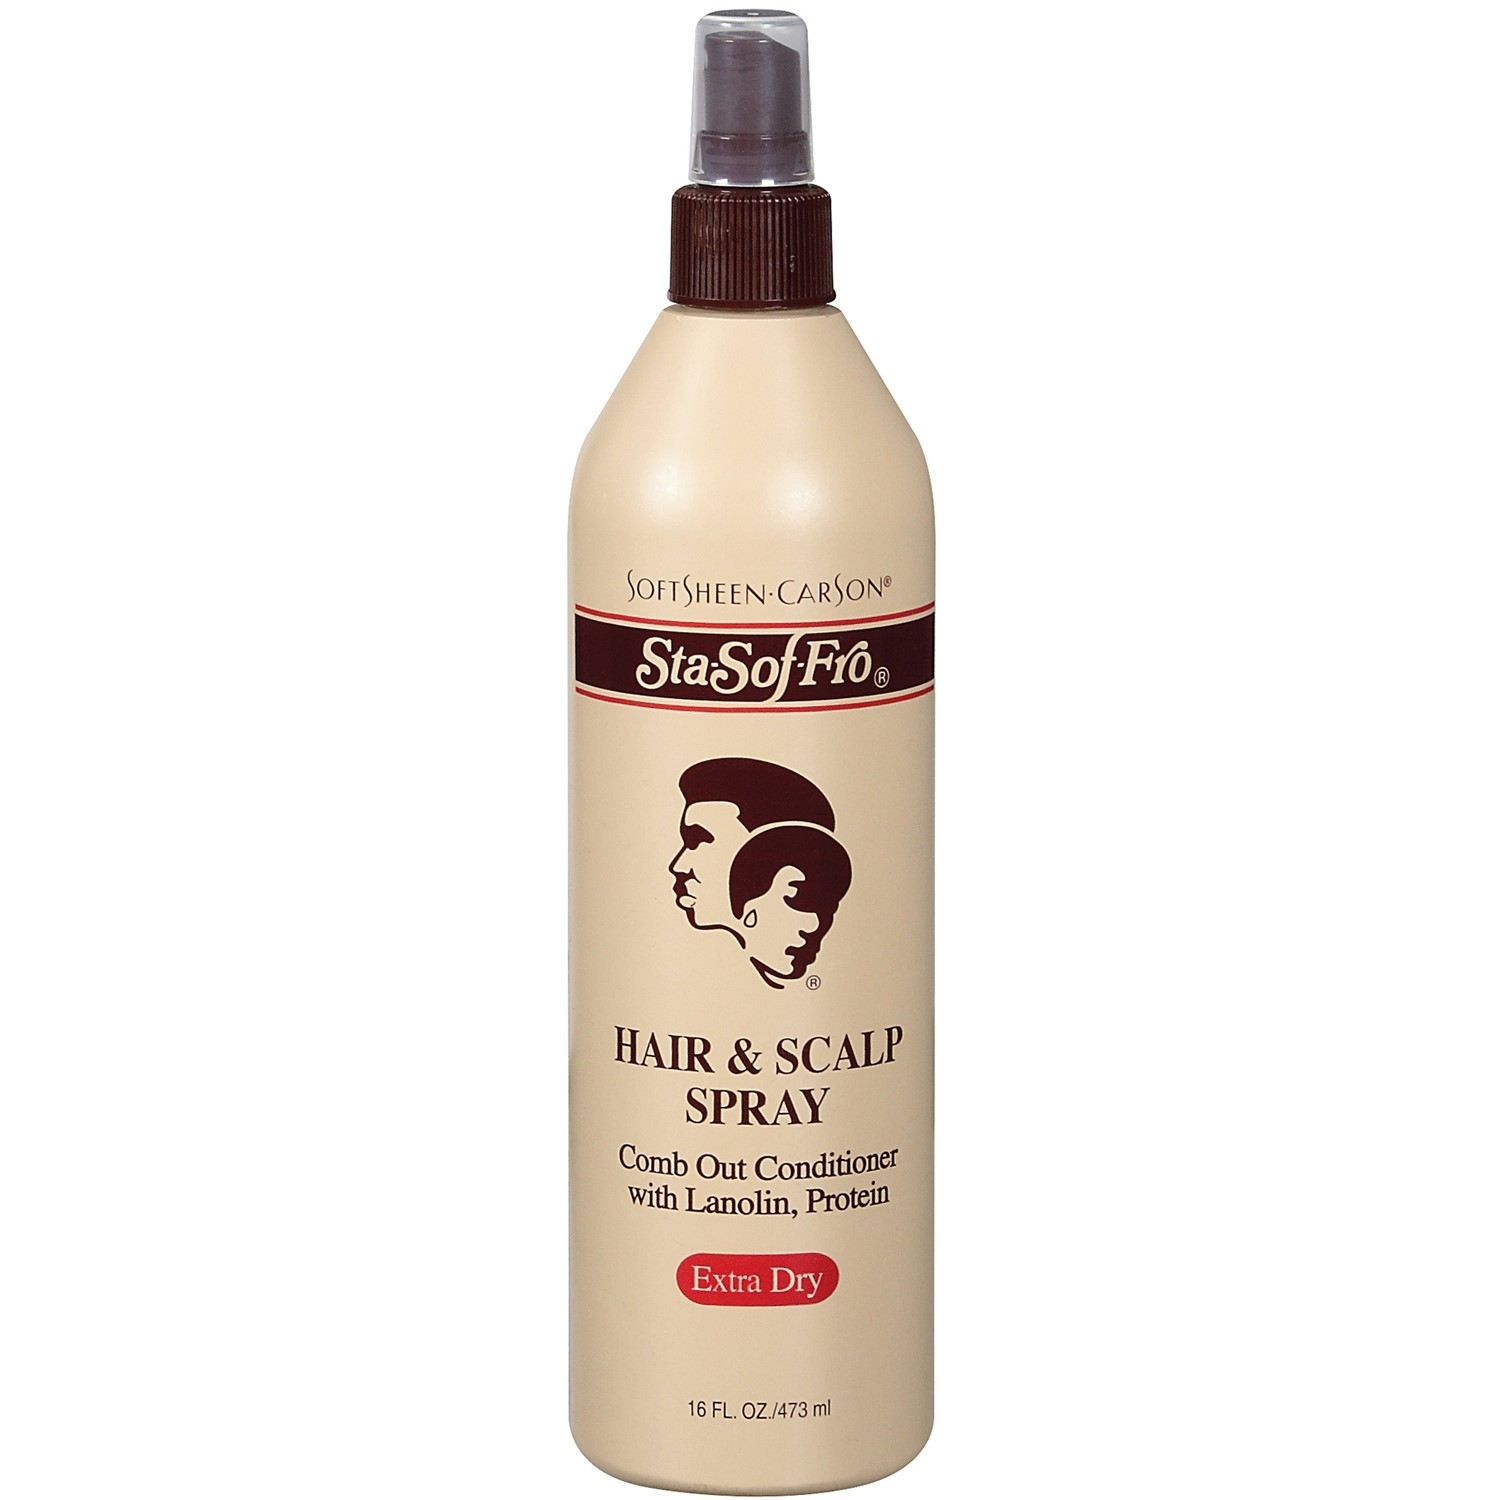 SoftSheen-Carson Sta-Sof-Fro Hair & Scalp Spray Comb Out Conditioner with Lanolin